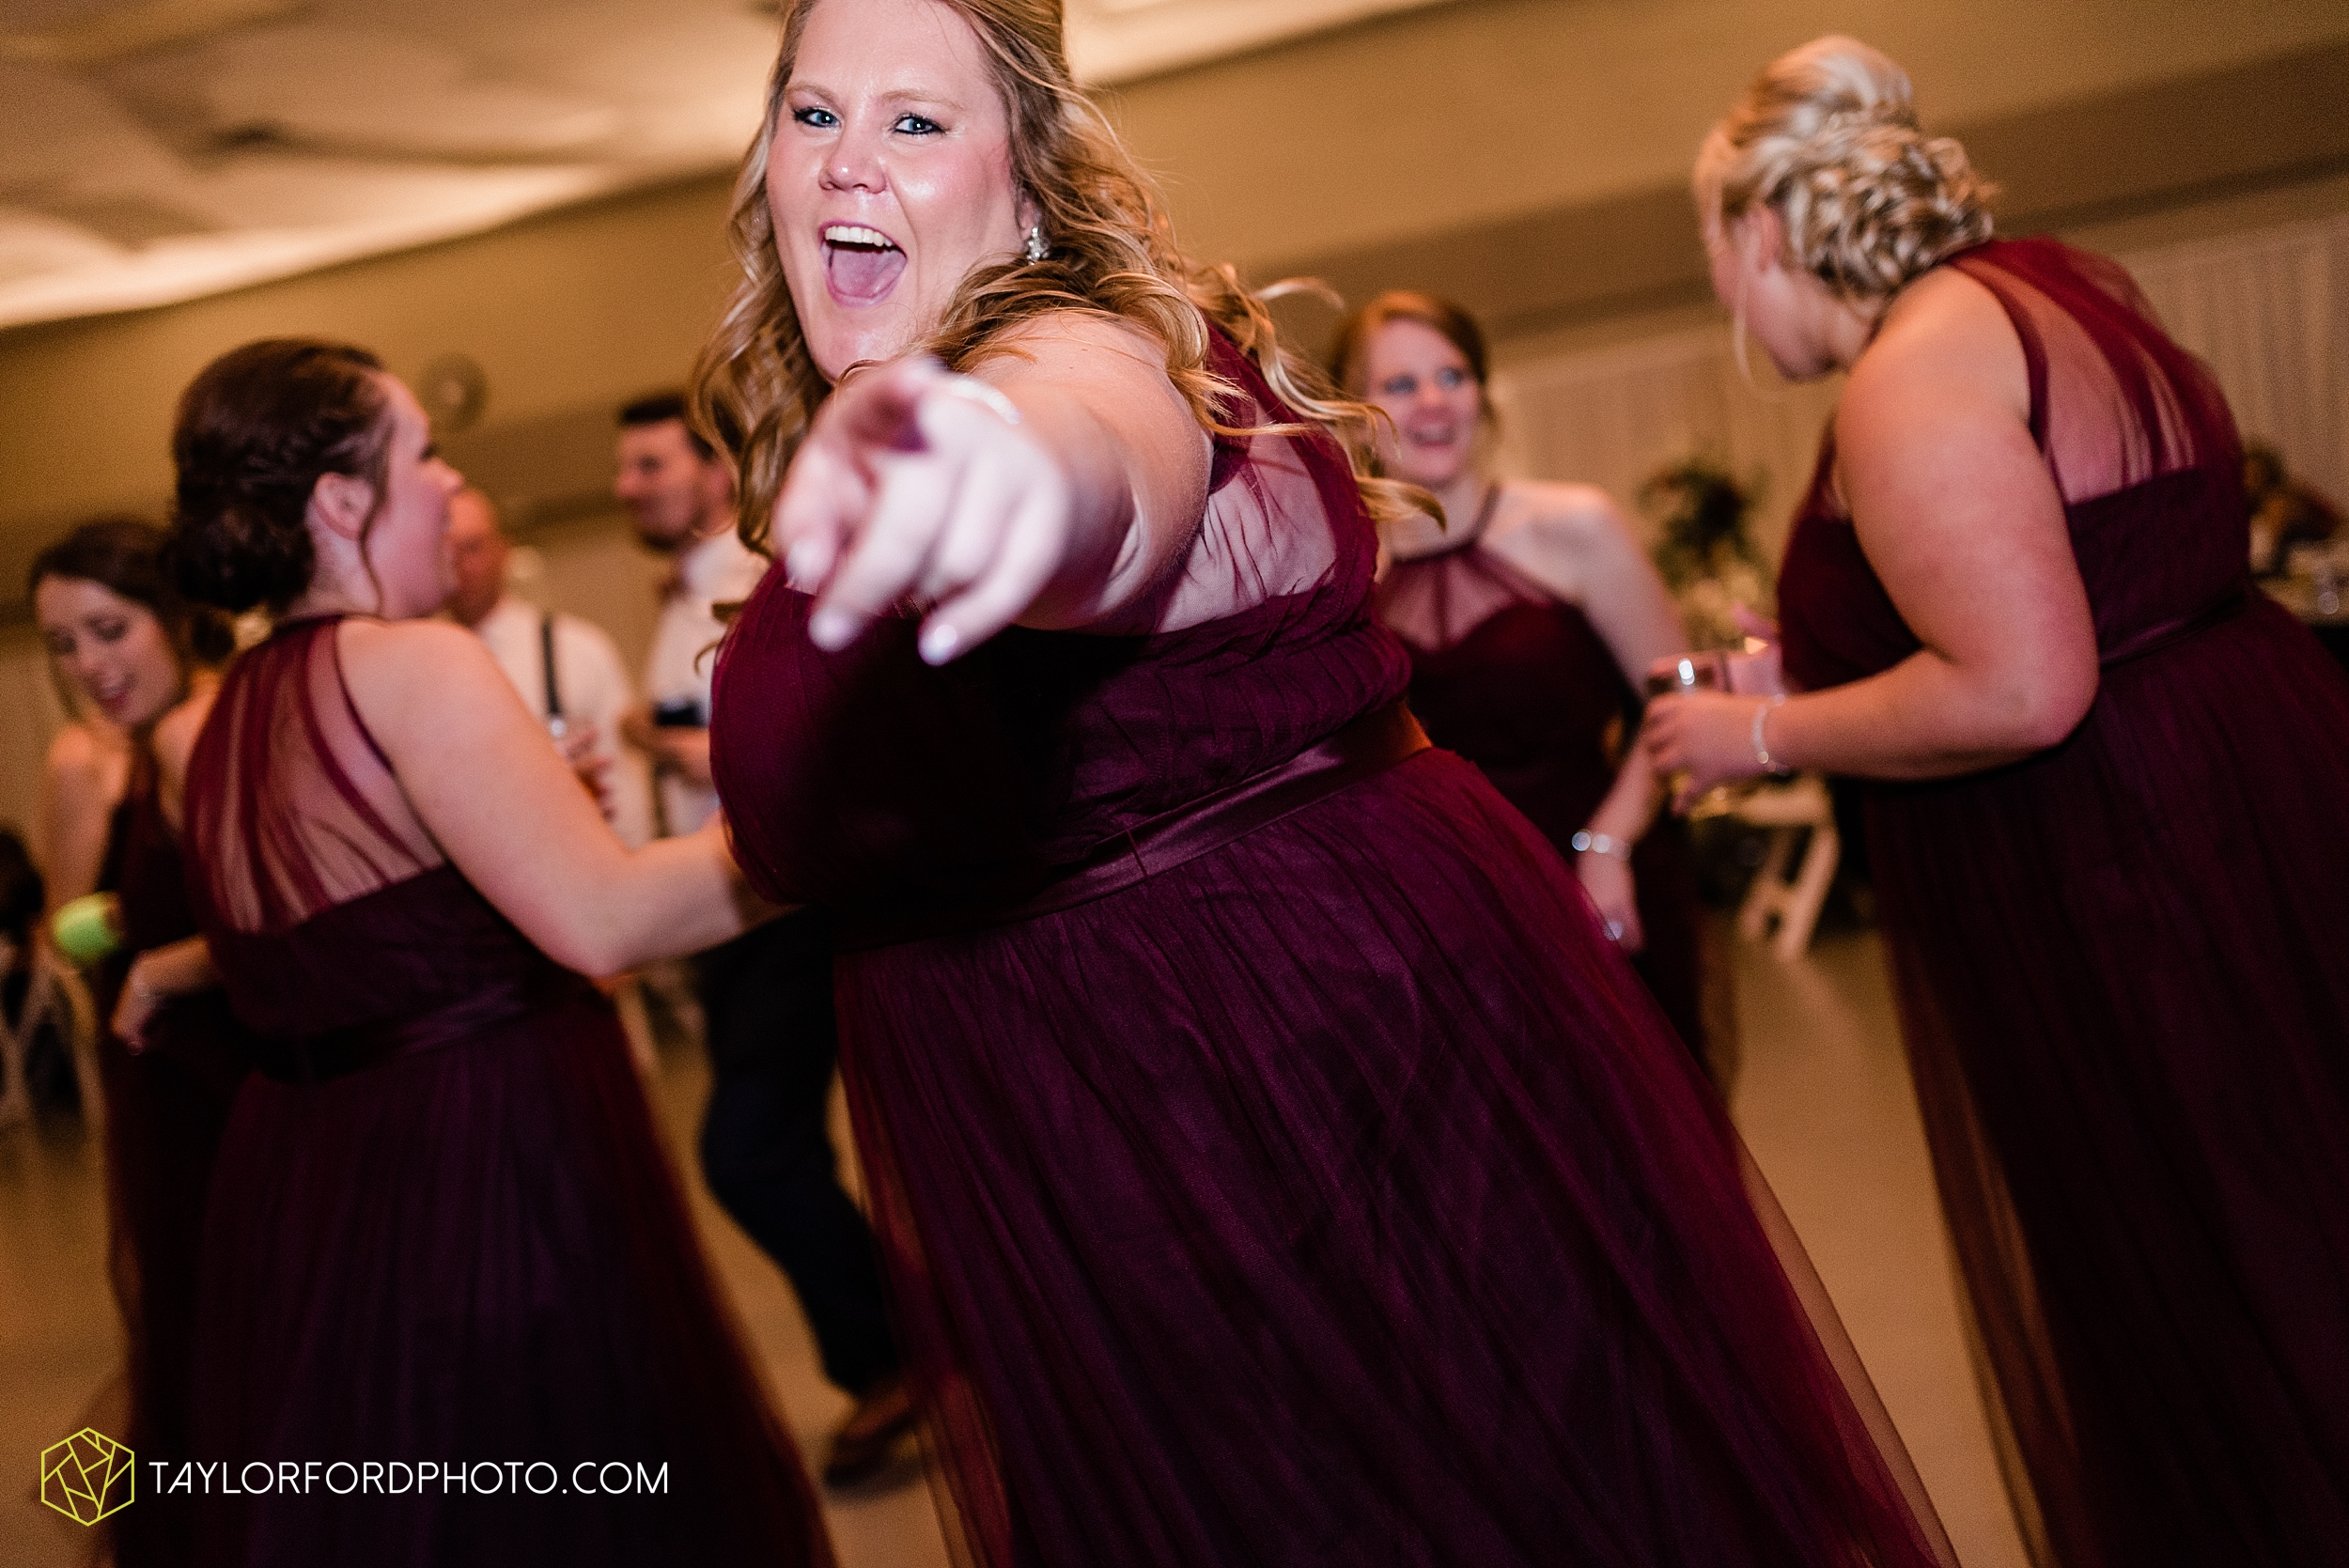 gayle-rayman-mike-steele-ottoville-ohio-wedding-immaculate-conception-parish-center-wedding-sycamore-lake-winery-wannamachers-photographer-taylor-ford-photography_0455.jpg